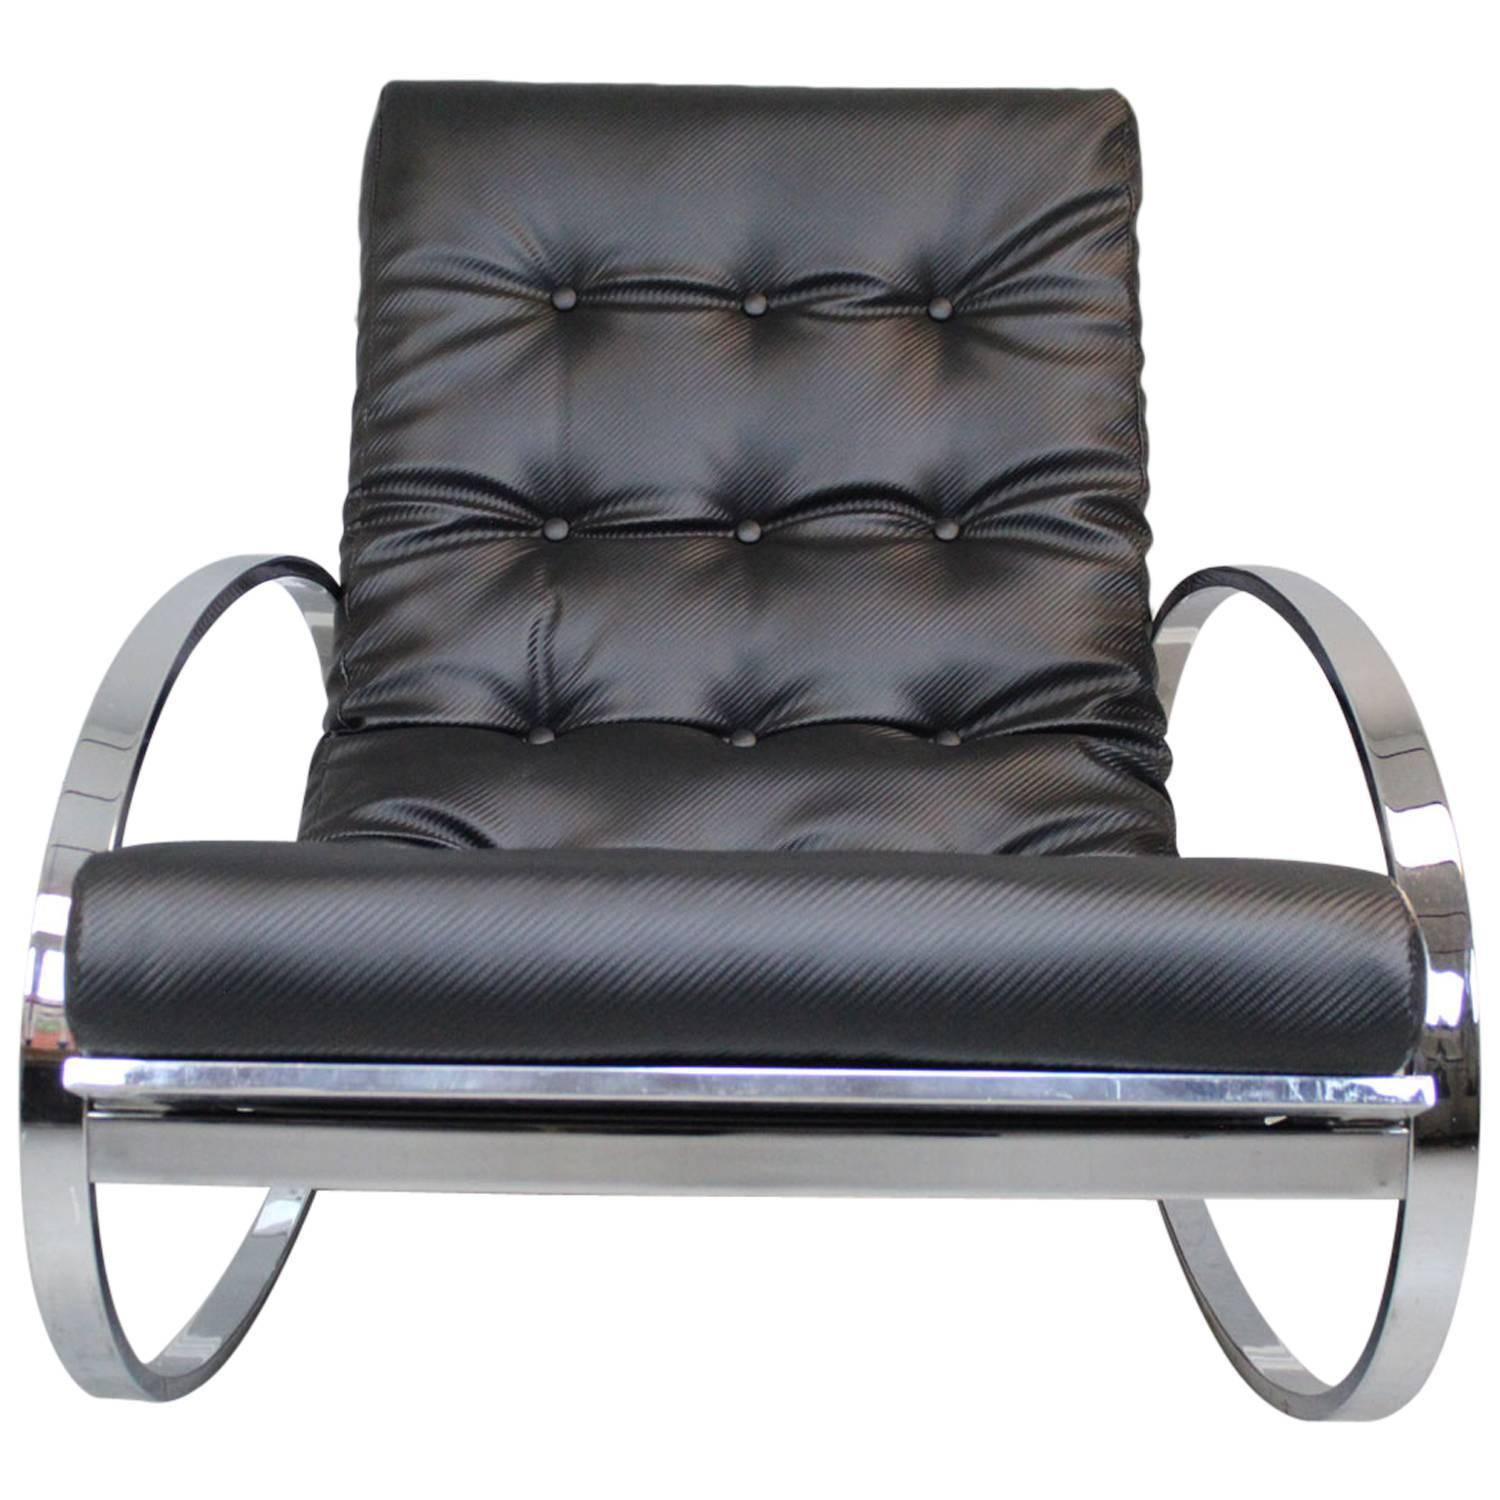 Chrome Rocking Chairs 39 For Sale at 1stdibs